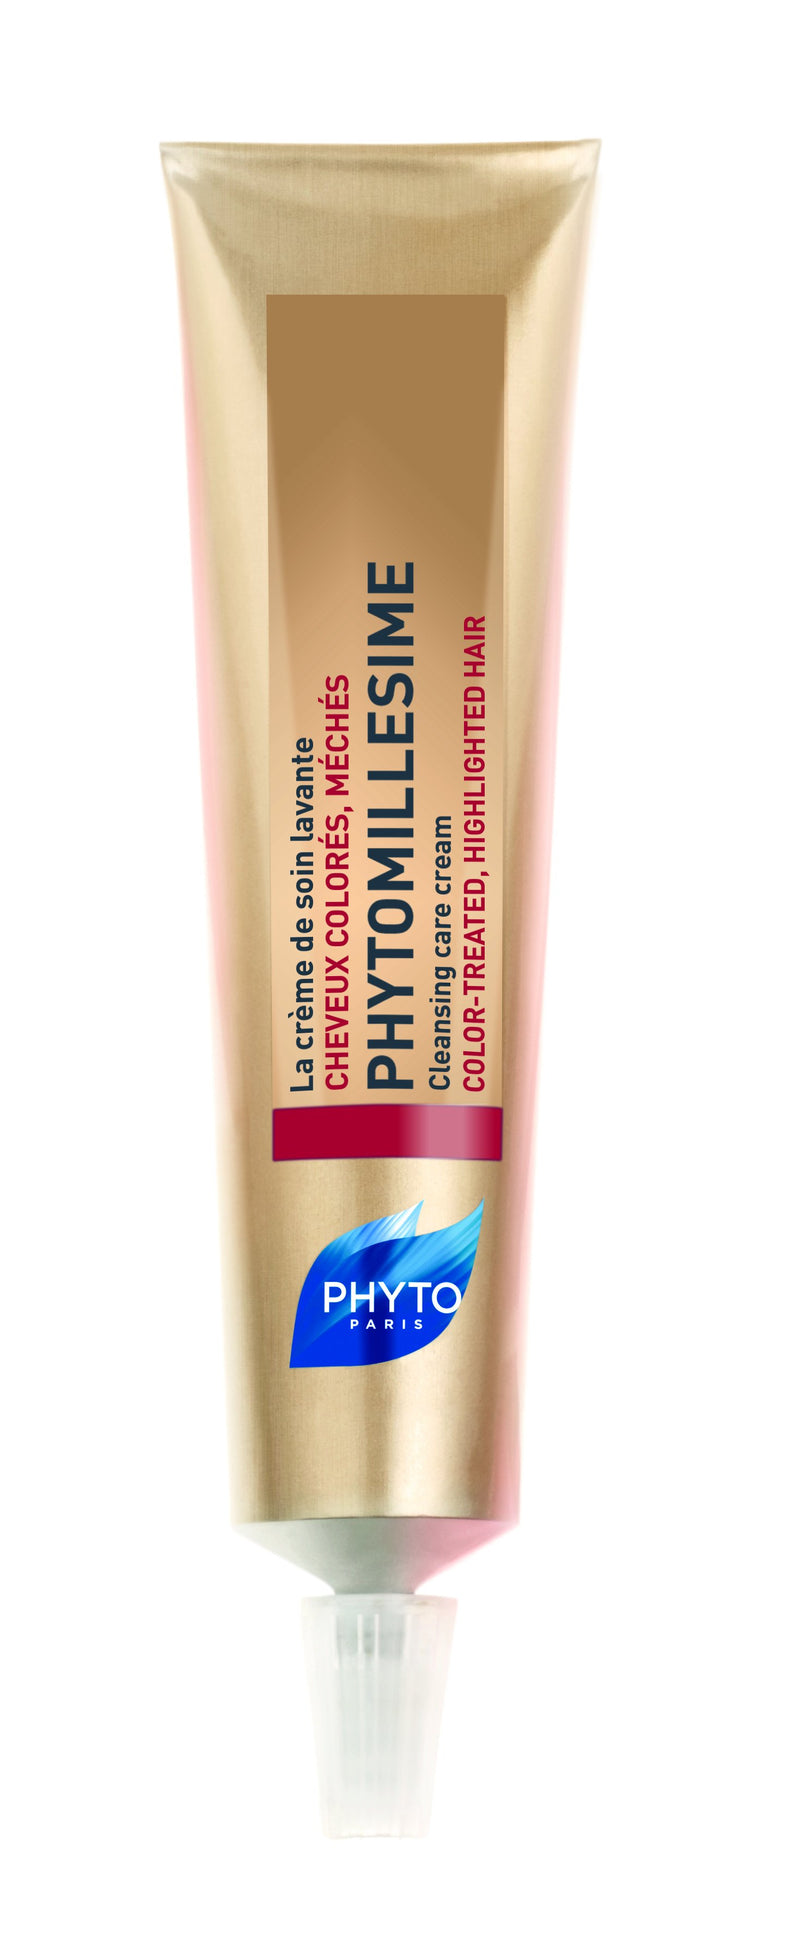 phyto-phytomillesime-cleansing-cream-cosmetics-online